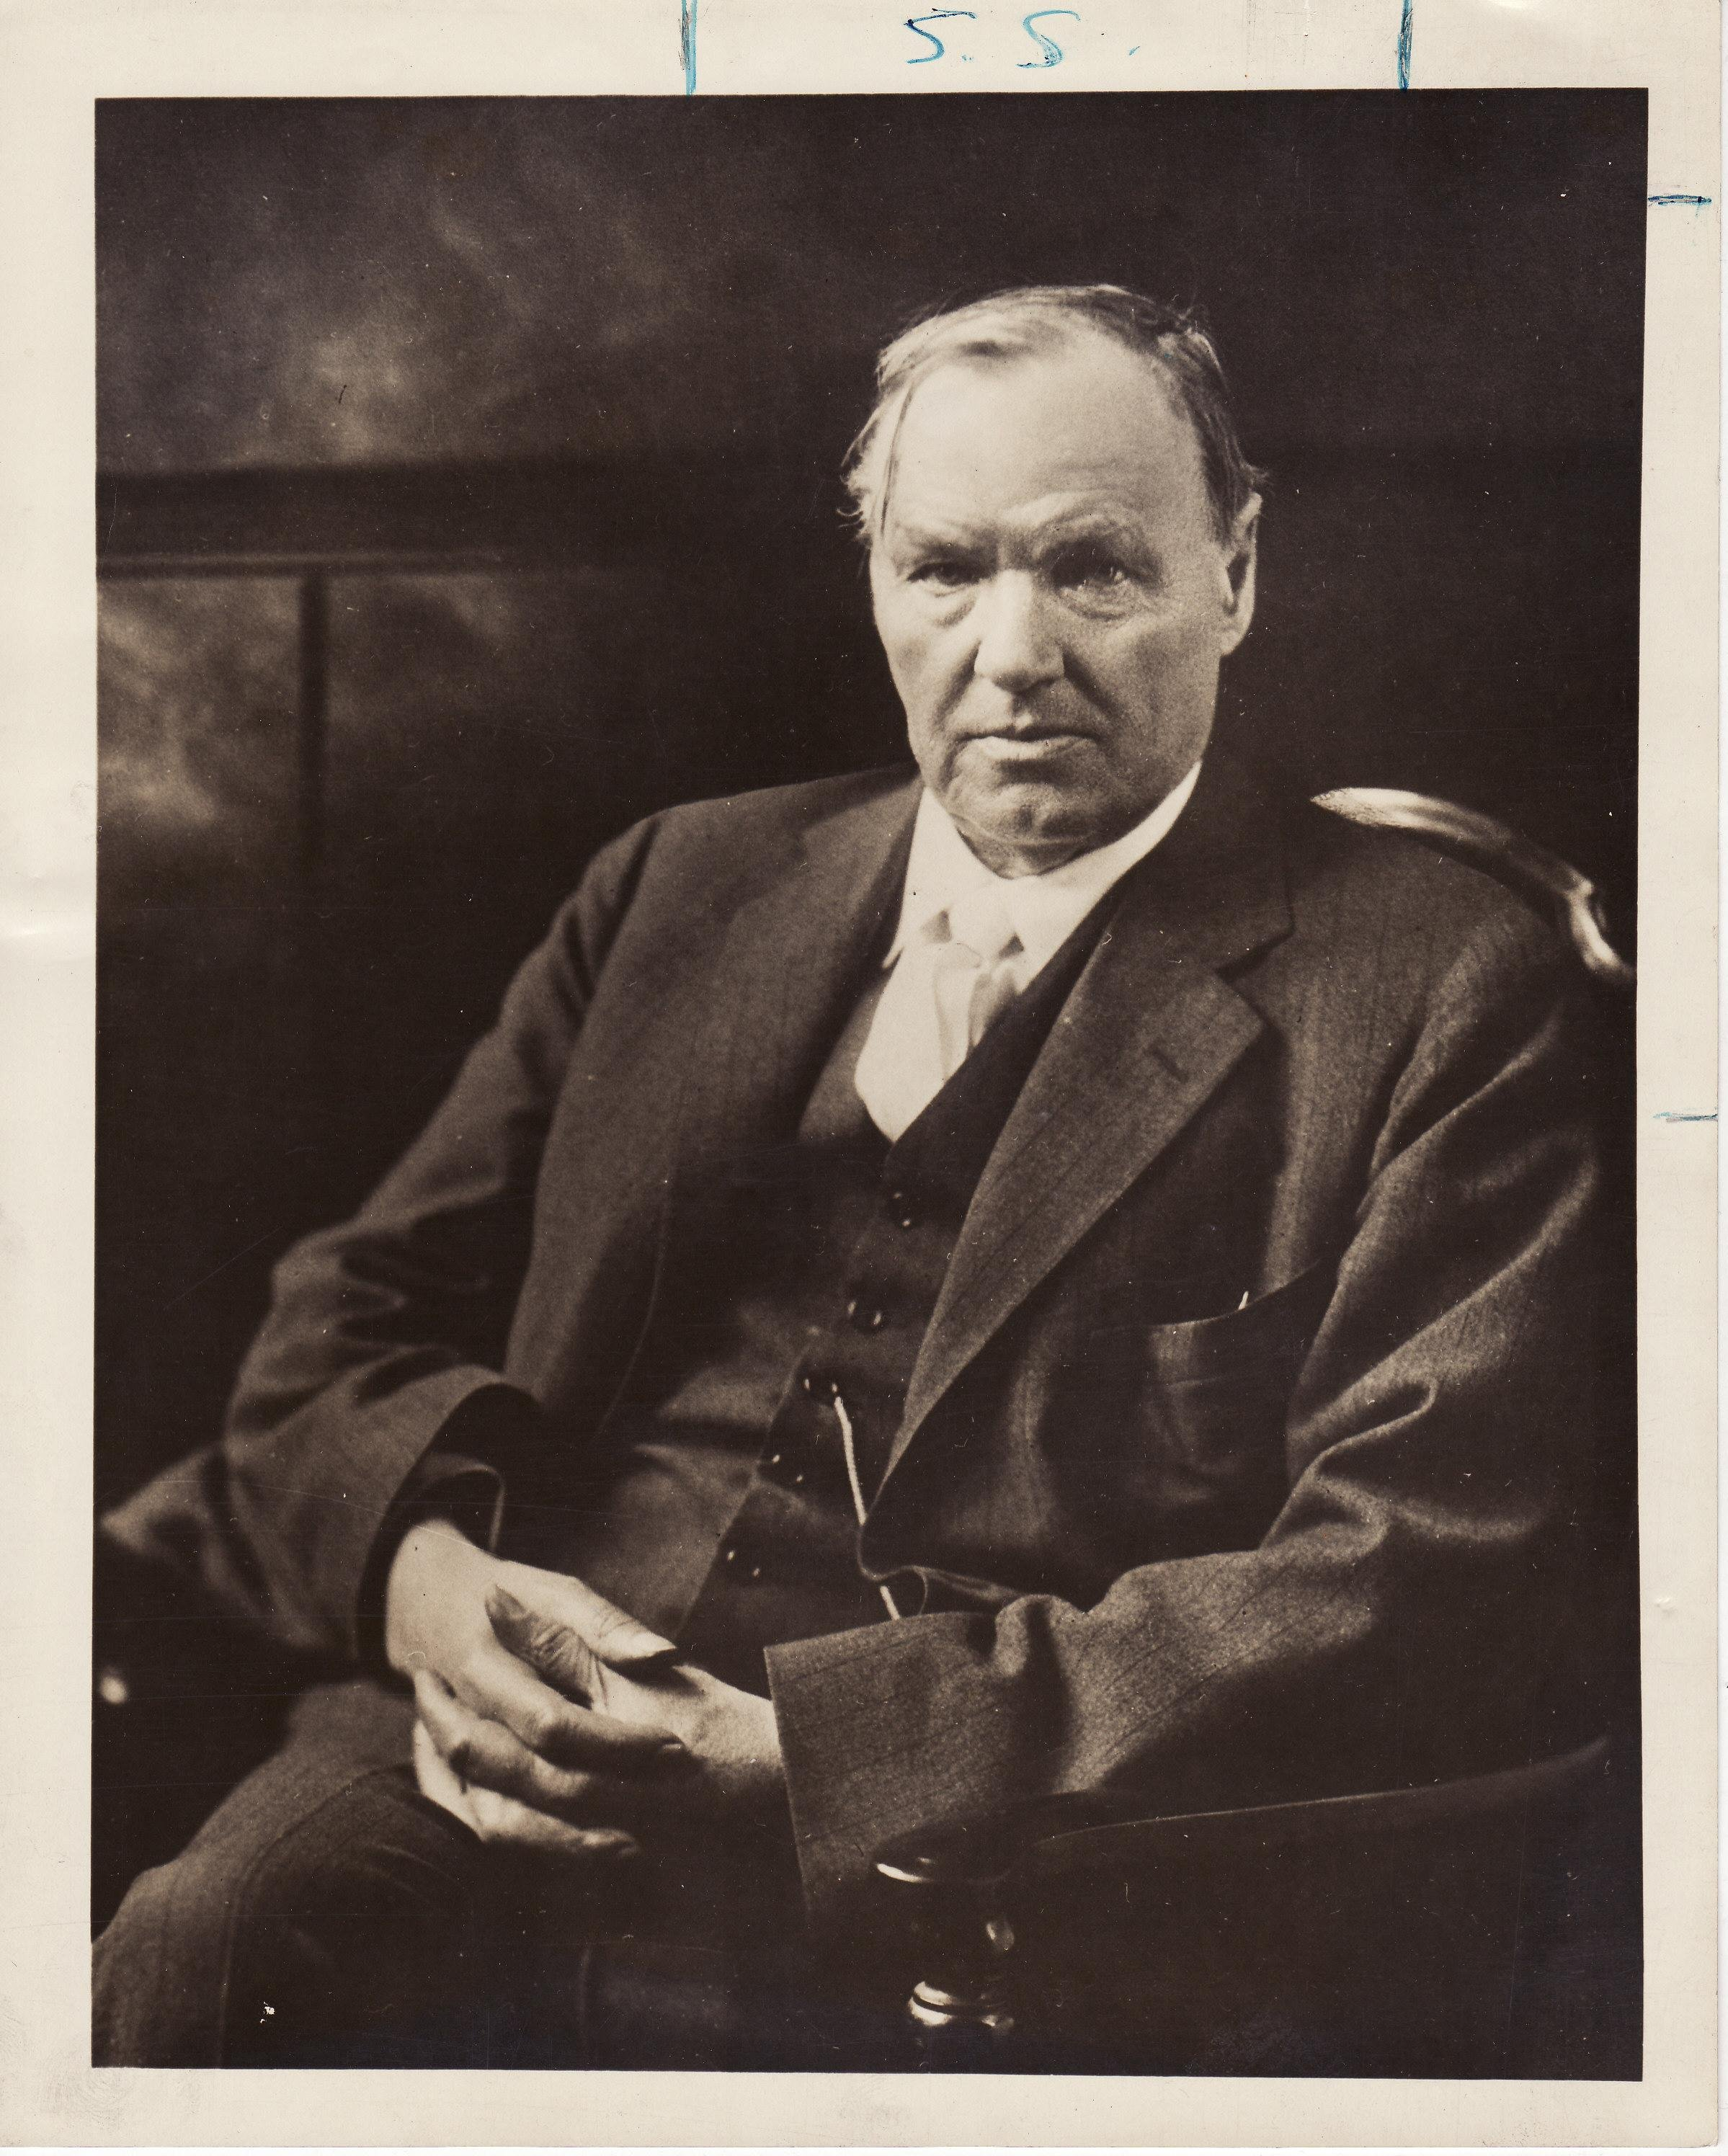 clarence darrow On a rainy night in los angeles in december 1911, clarence darrow arrived at the apartment of his mistress, mary field they sat at the kitchen table, beneath a bare overhead light, and she watched with dismay as he pulled a bottle of whiskey from one pocket of his overcoat and a handgun from the .